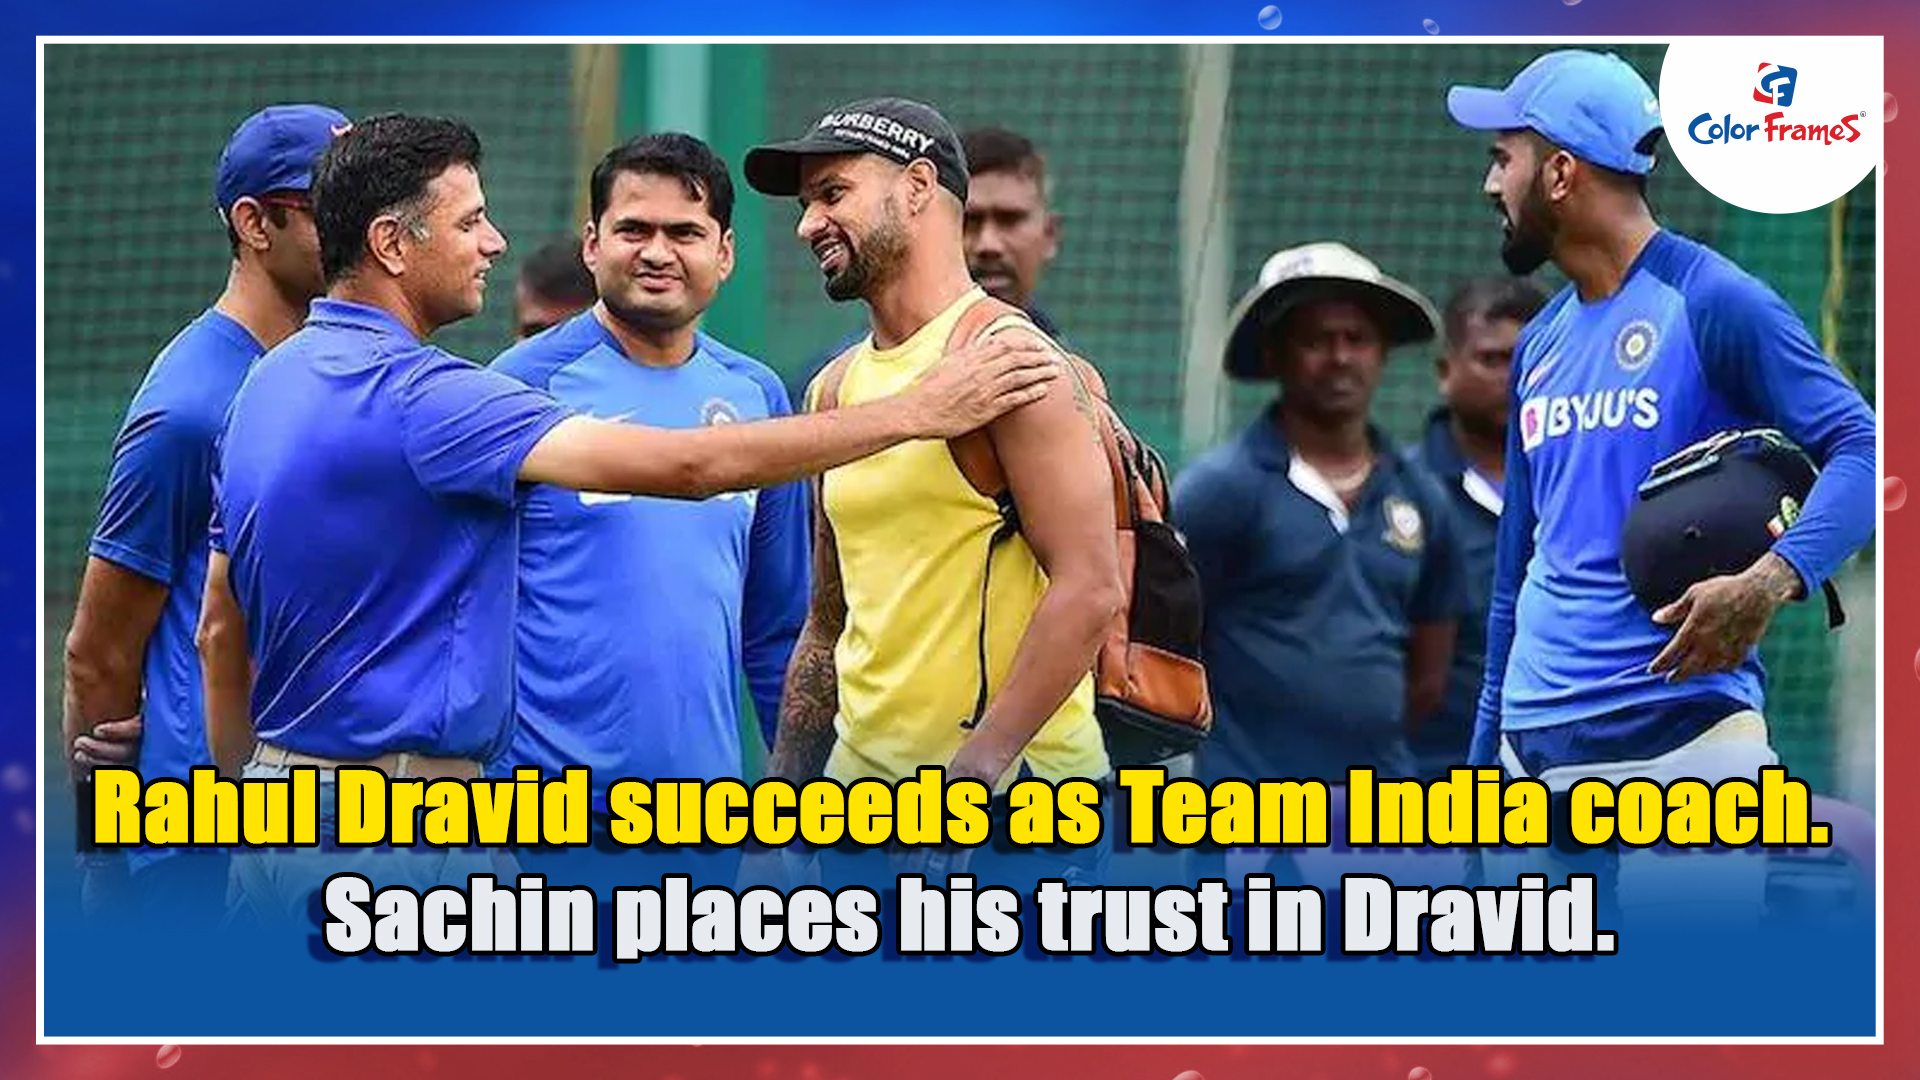 Rahul Dravid succeeds as Team India coach.  Sachin places his trust in Dravid.